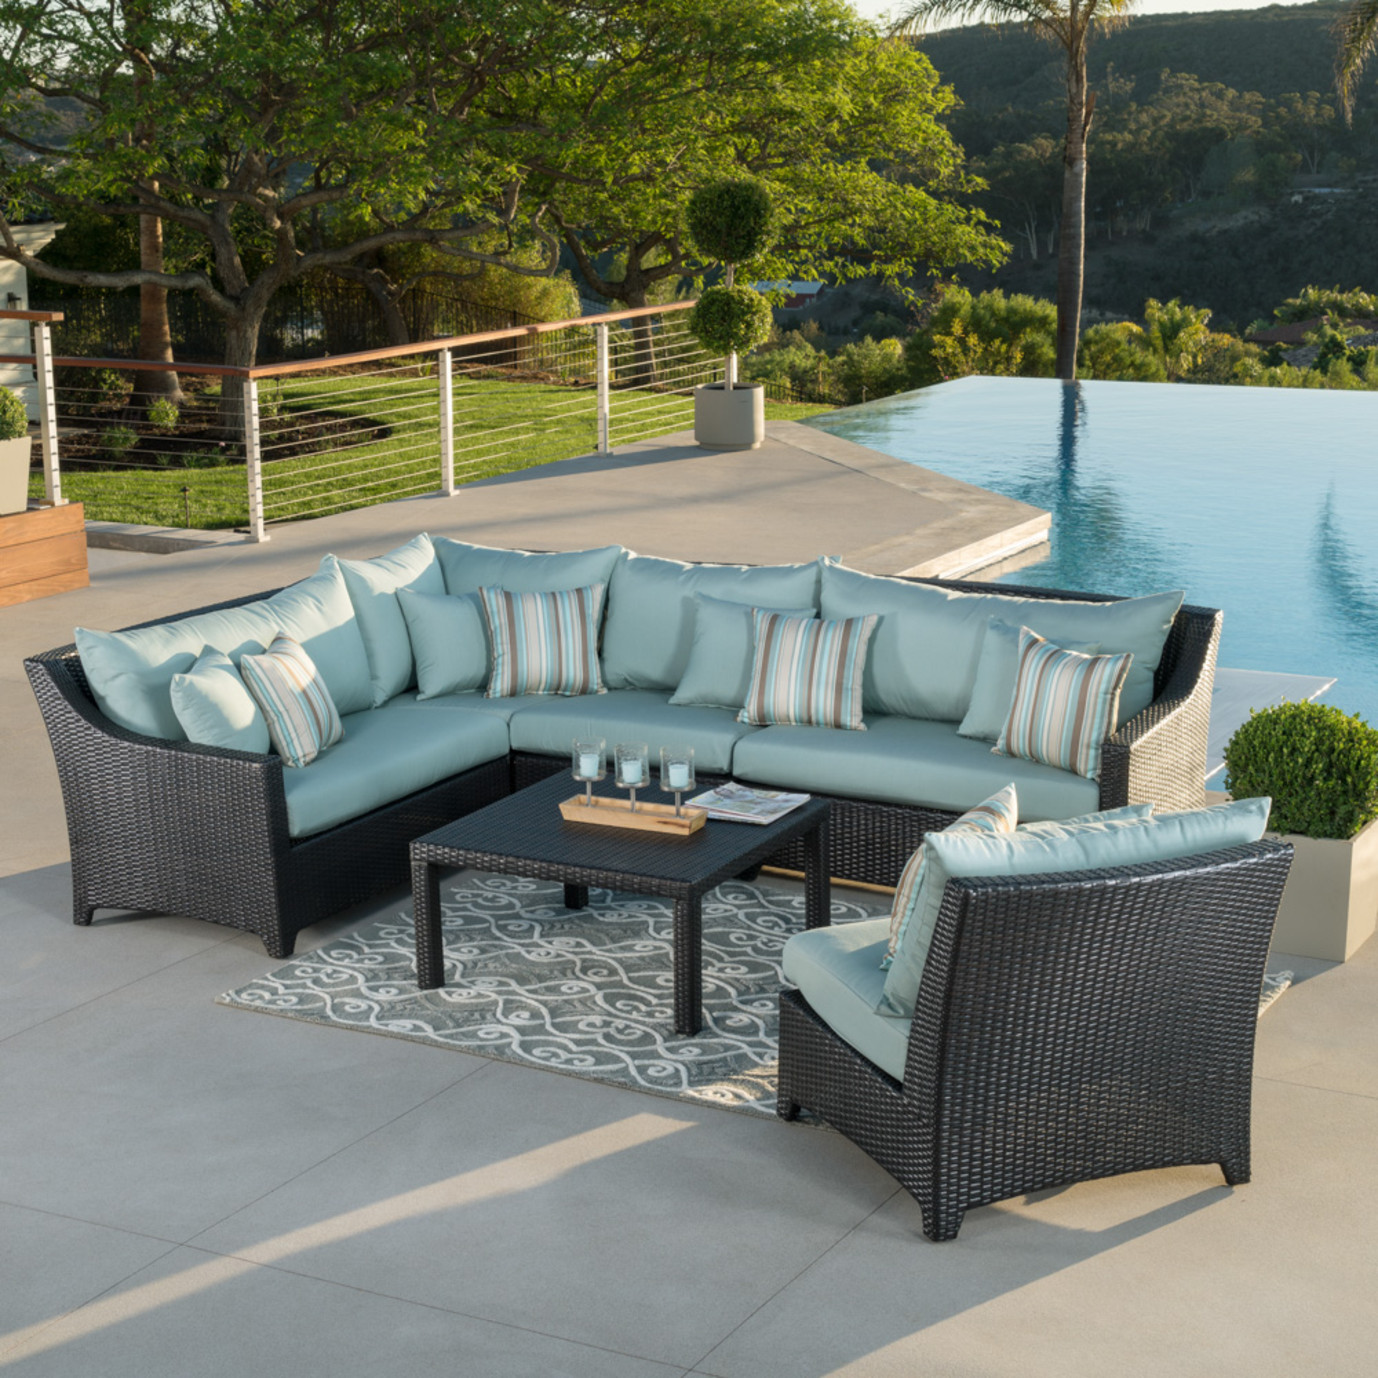 Deco 6pc Sectional And Table Bliss Blue Rst Brands